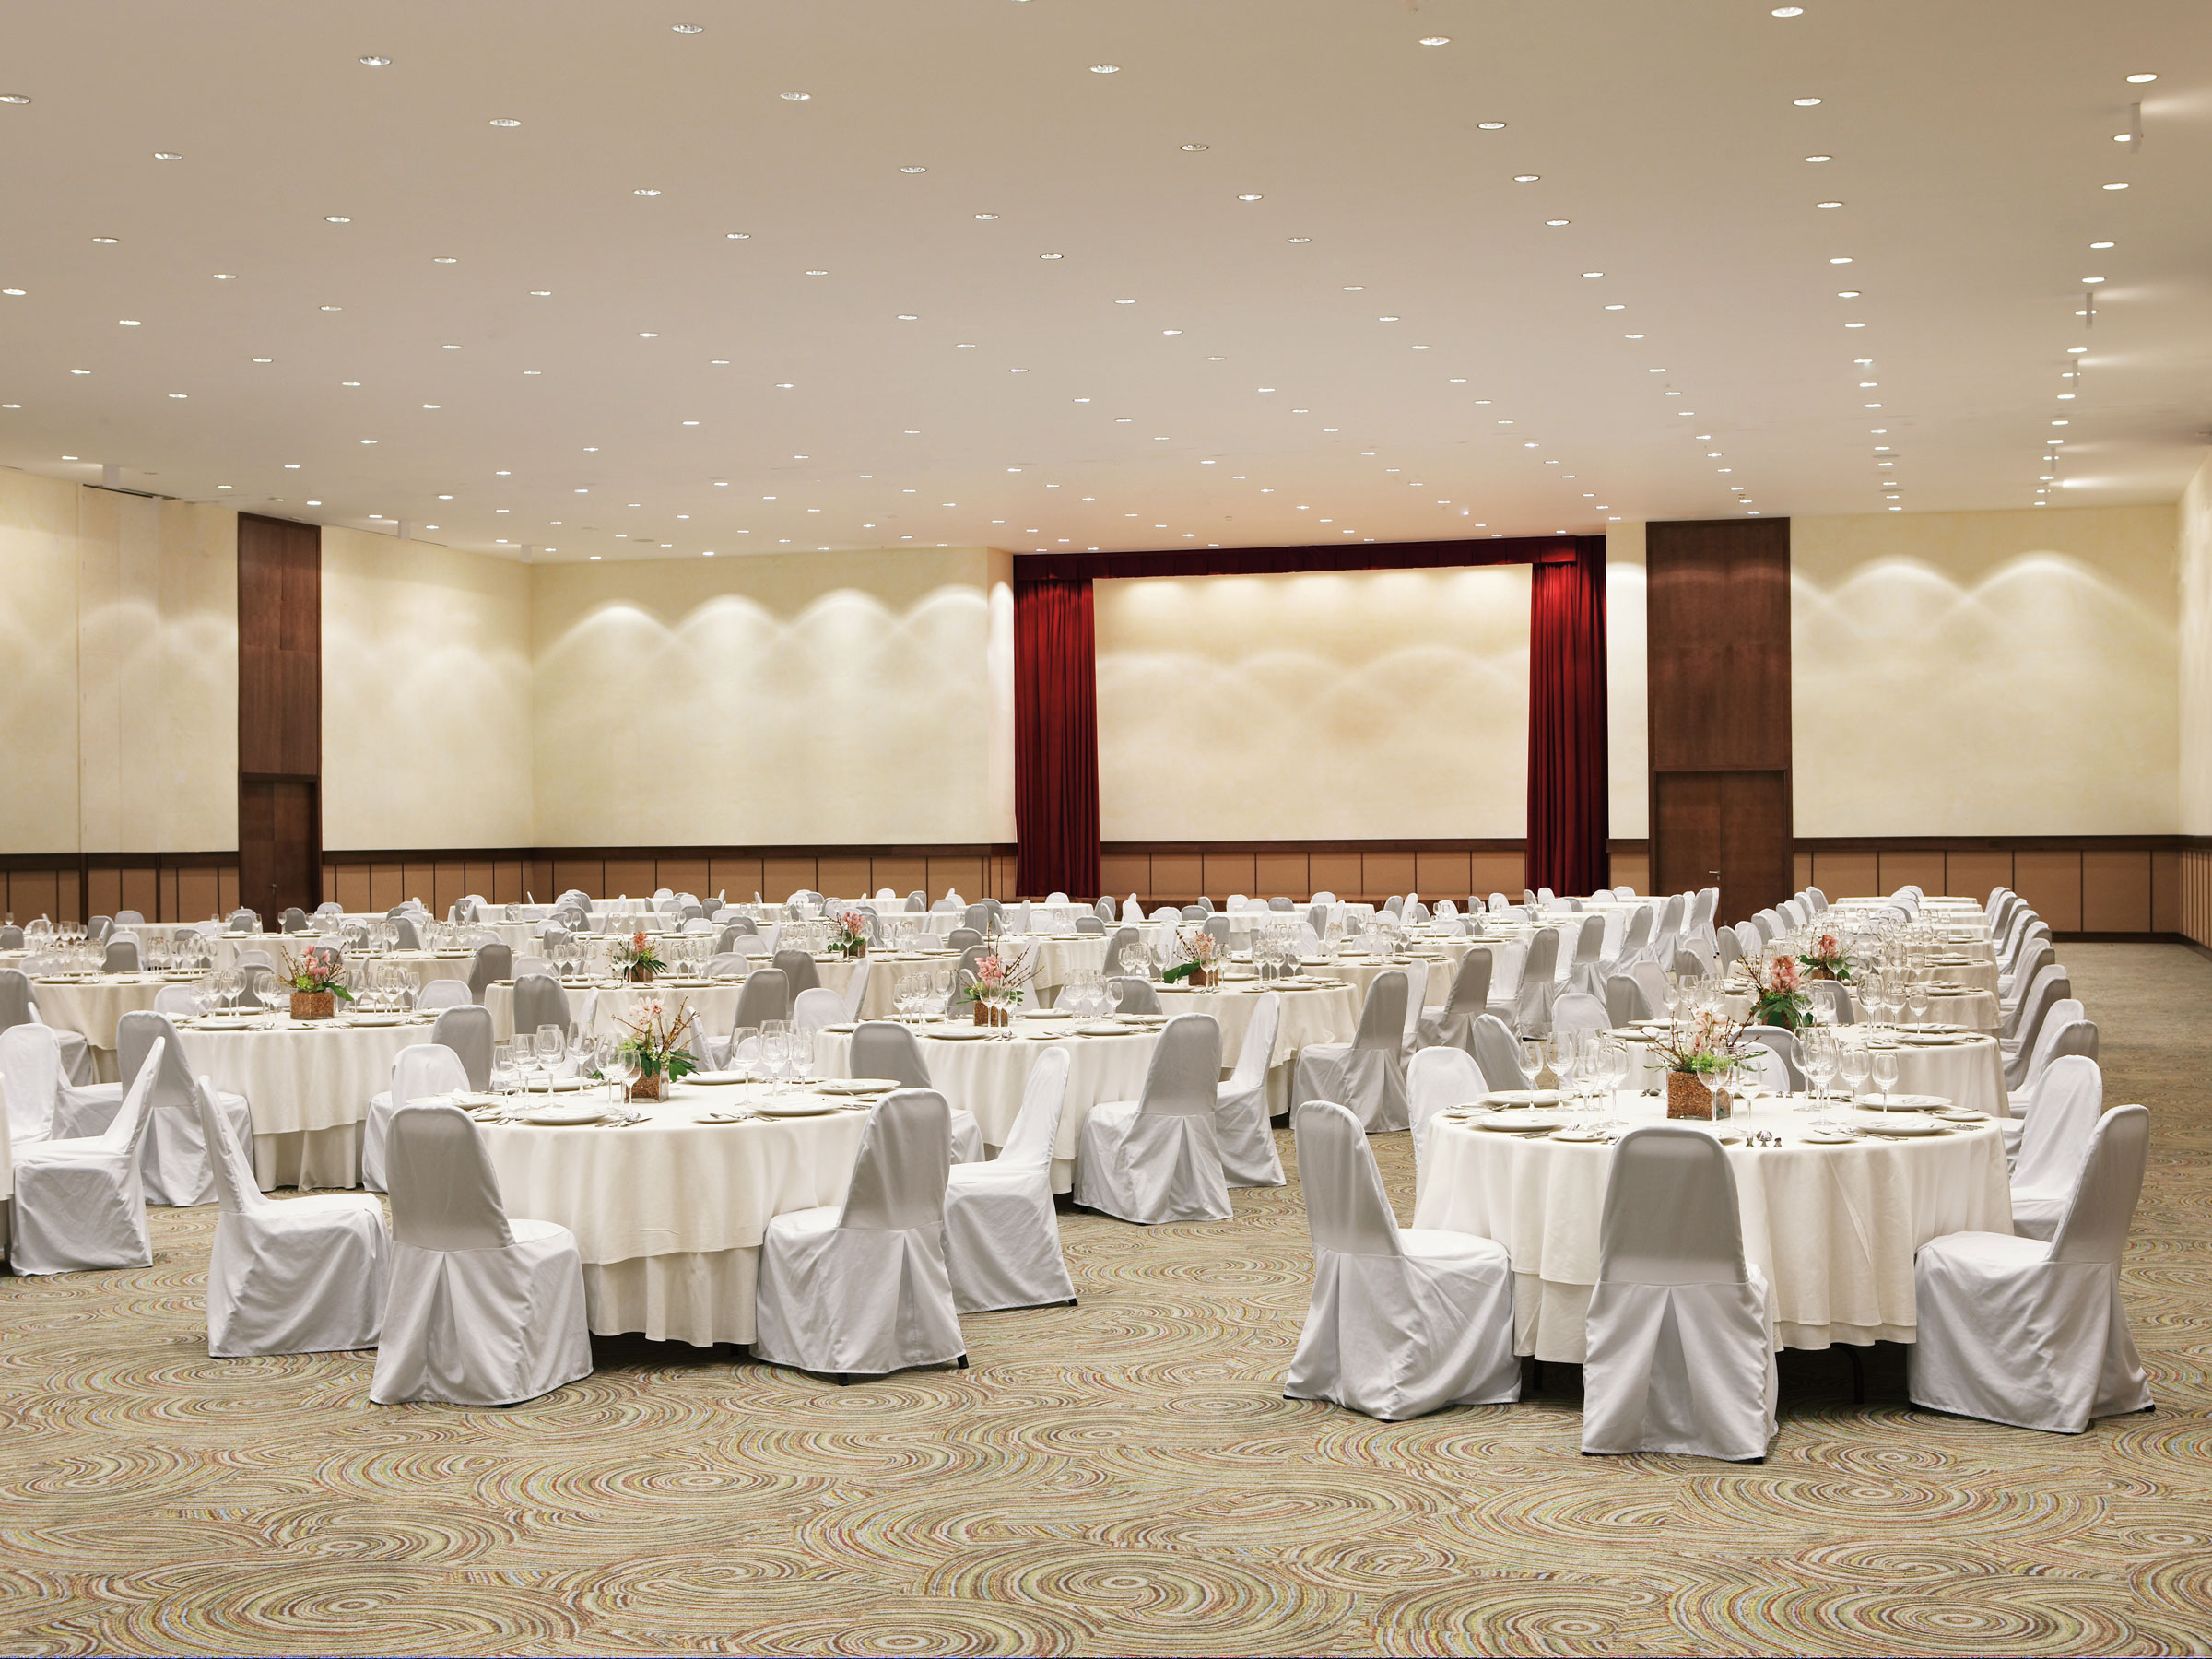 Group Events and Meetings at a Cancun Resort